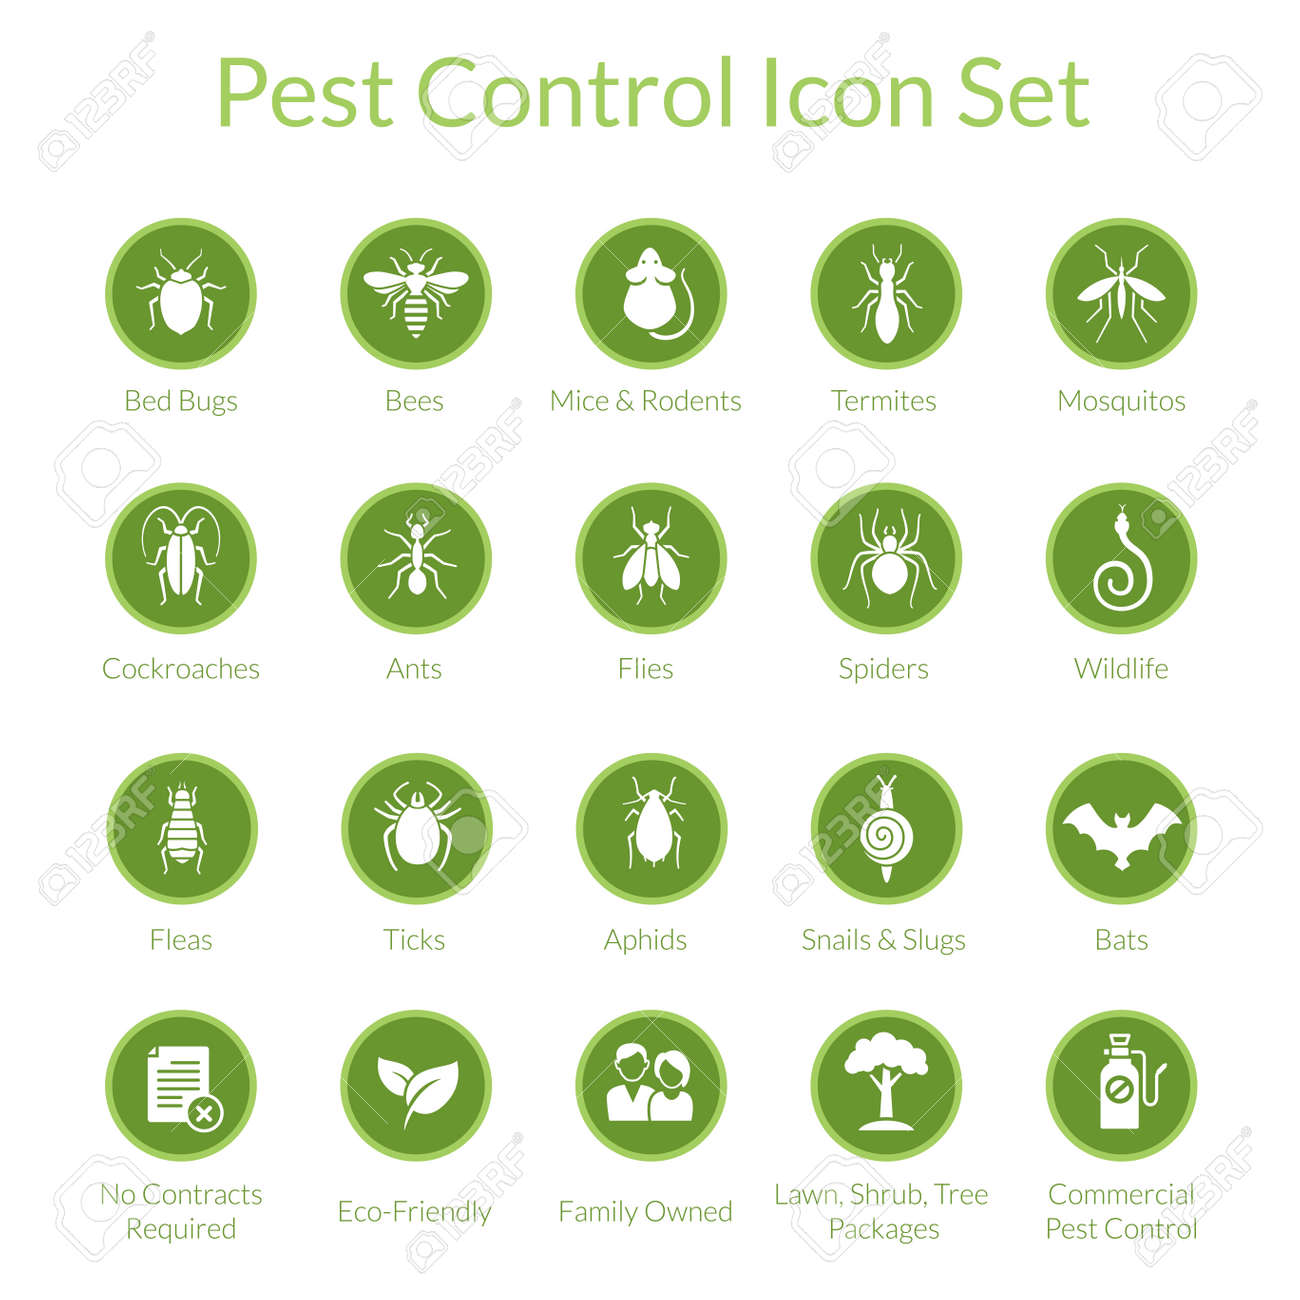 Vector icon set with insects like flies, cockroaches, bed bugs, spiders and termites for pest control companies - 44964098